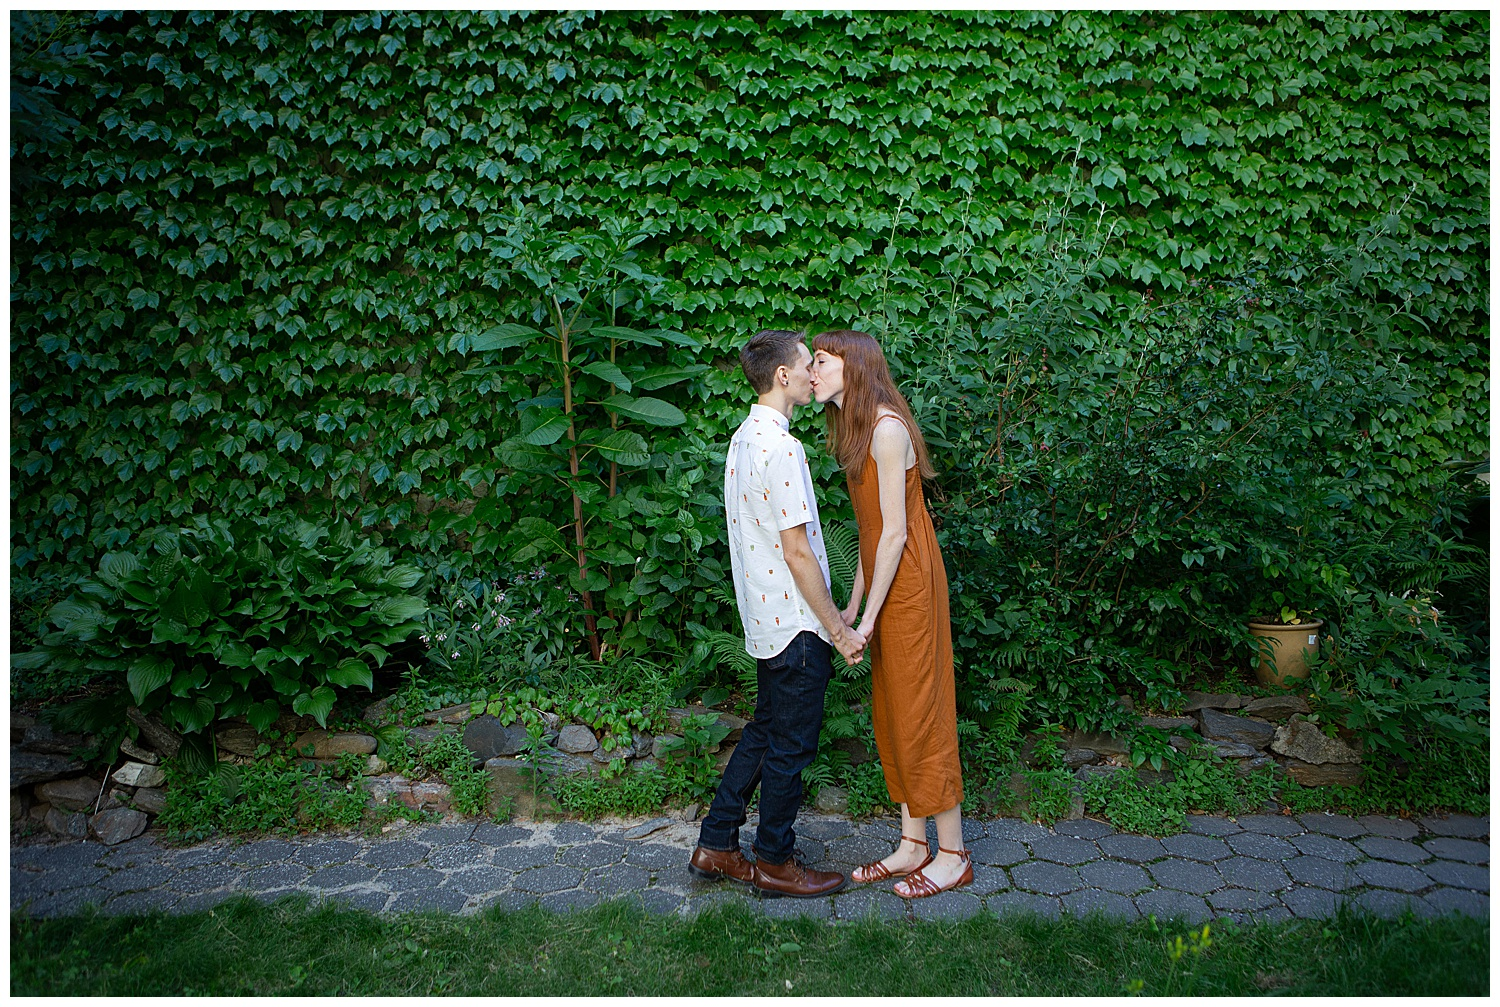 Kate-Alison-Photography-Central-Park-Engagement-Session-Madison-Alex-6.jpg